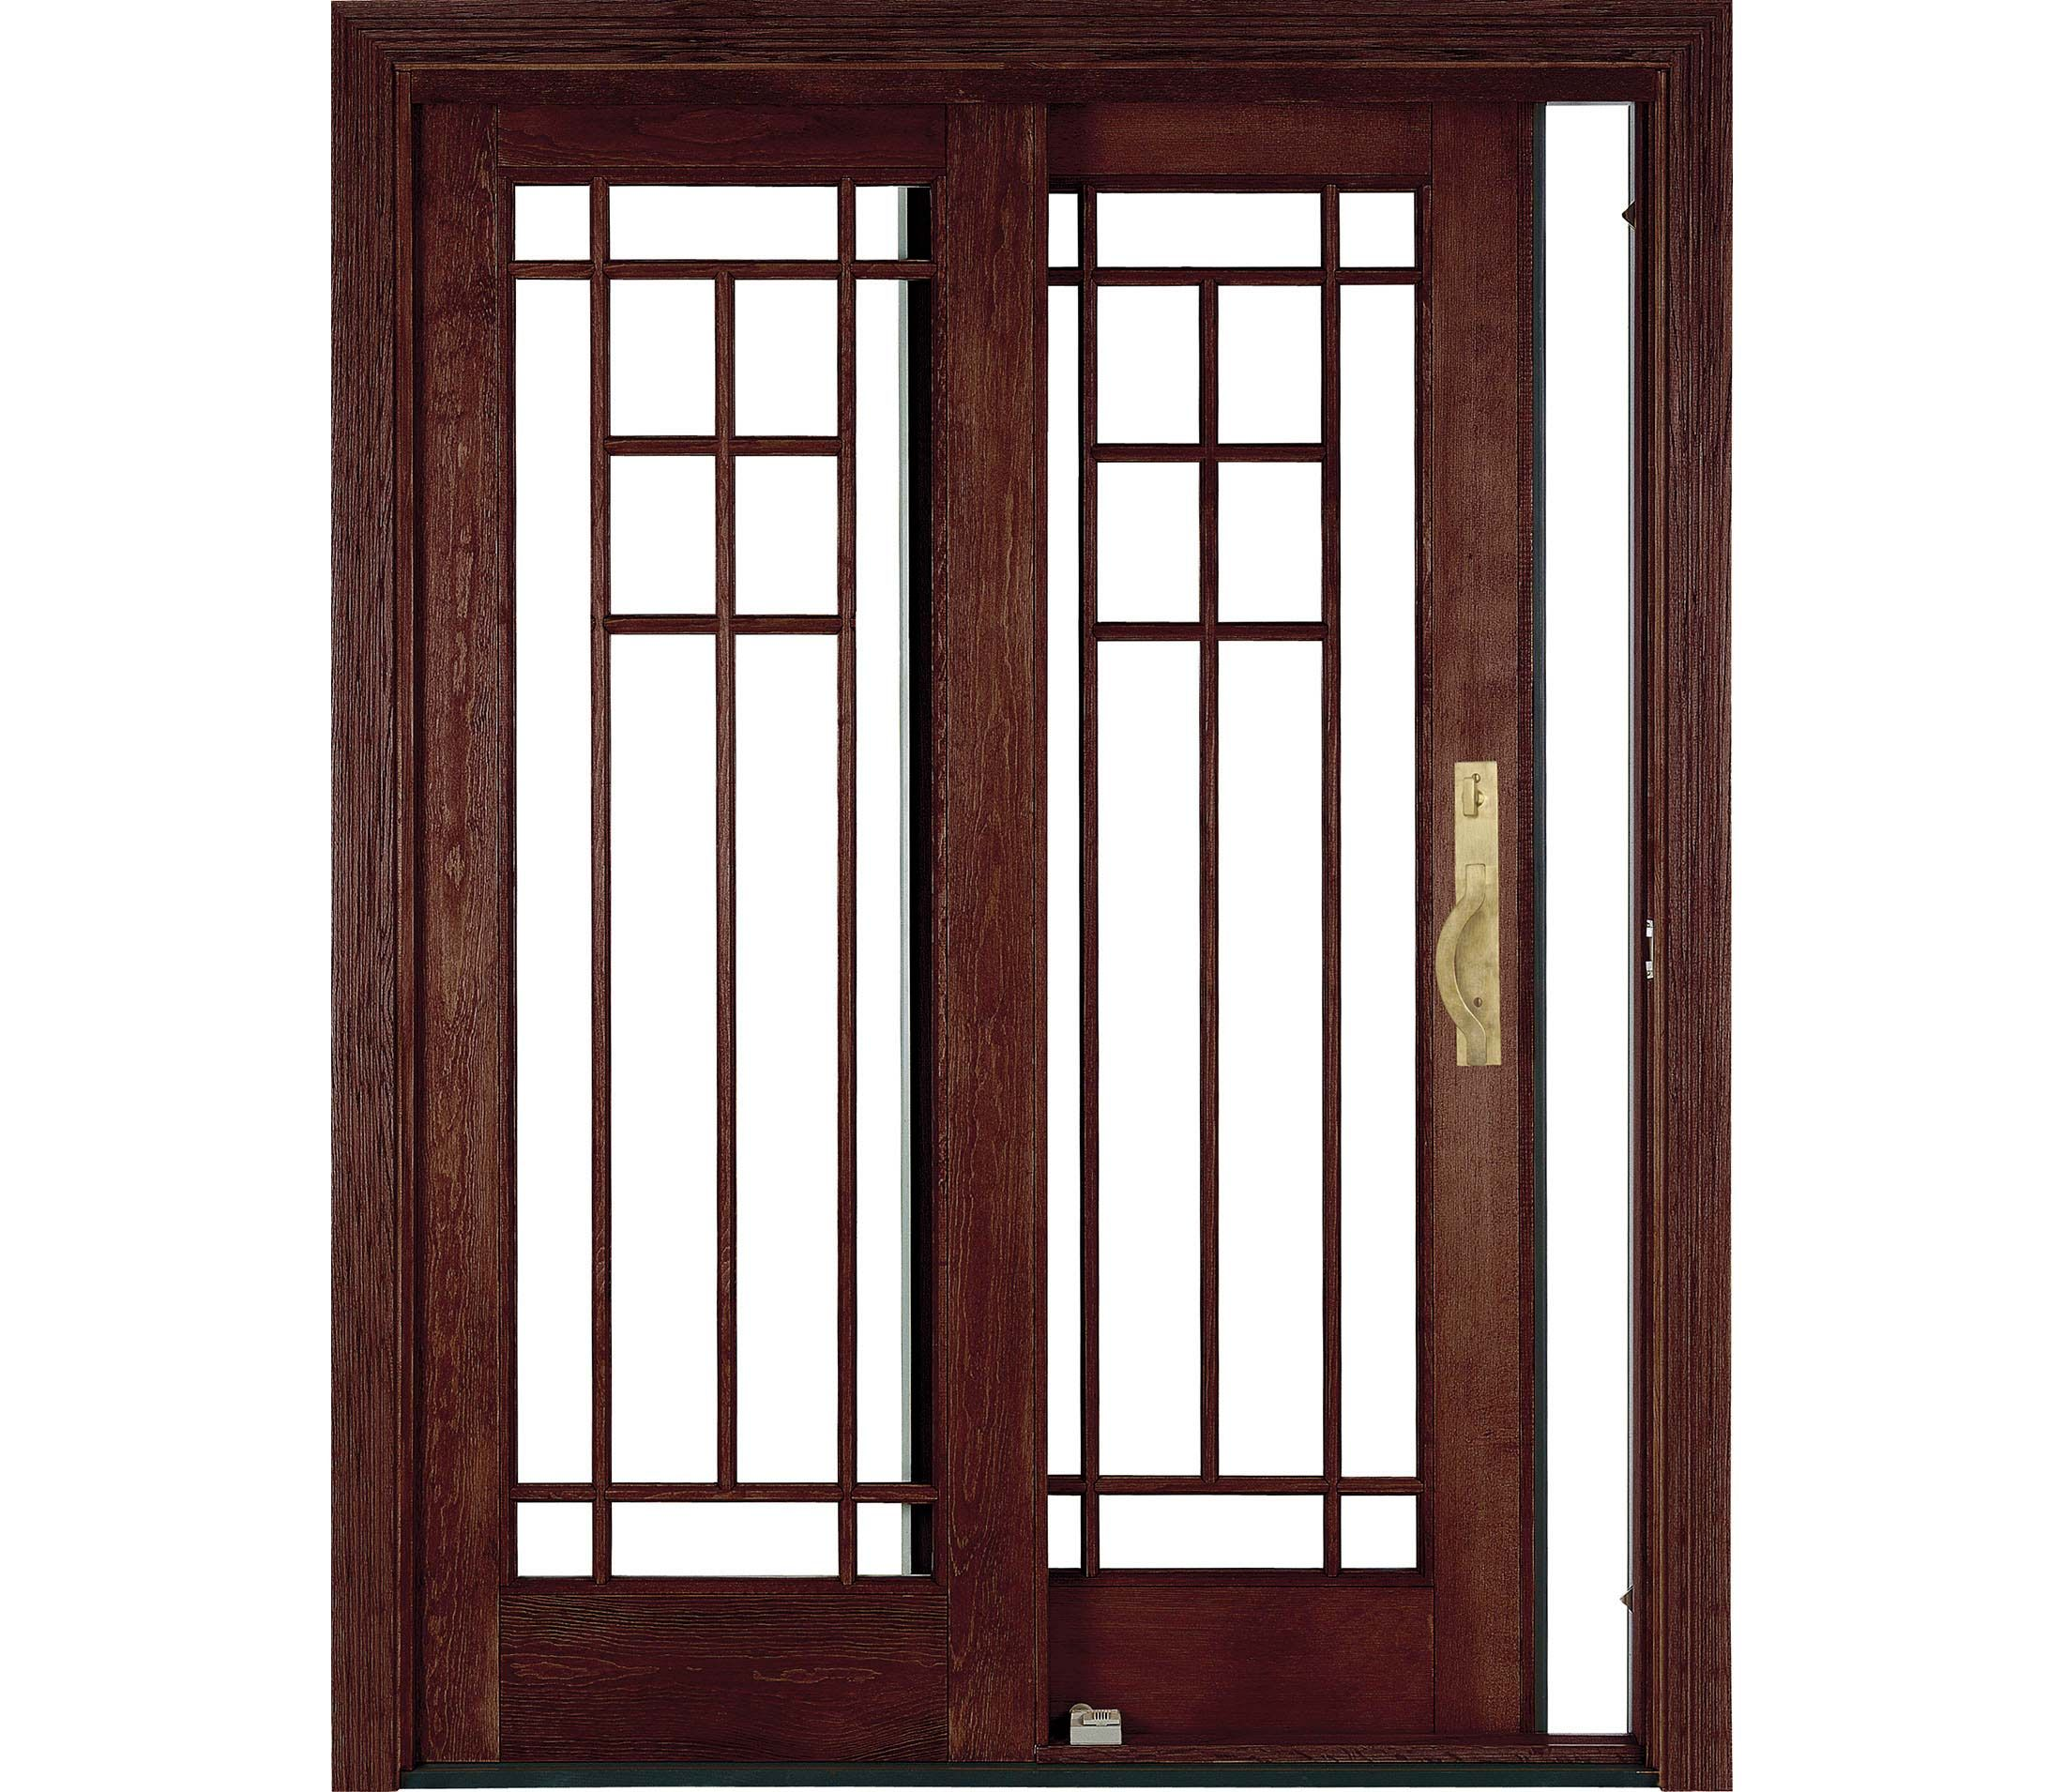 Architect series sliding patio door for Patio door styles